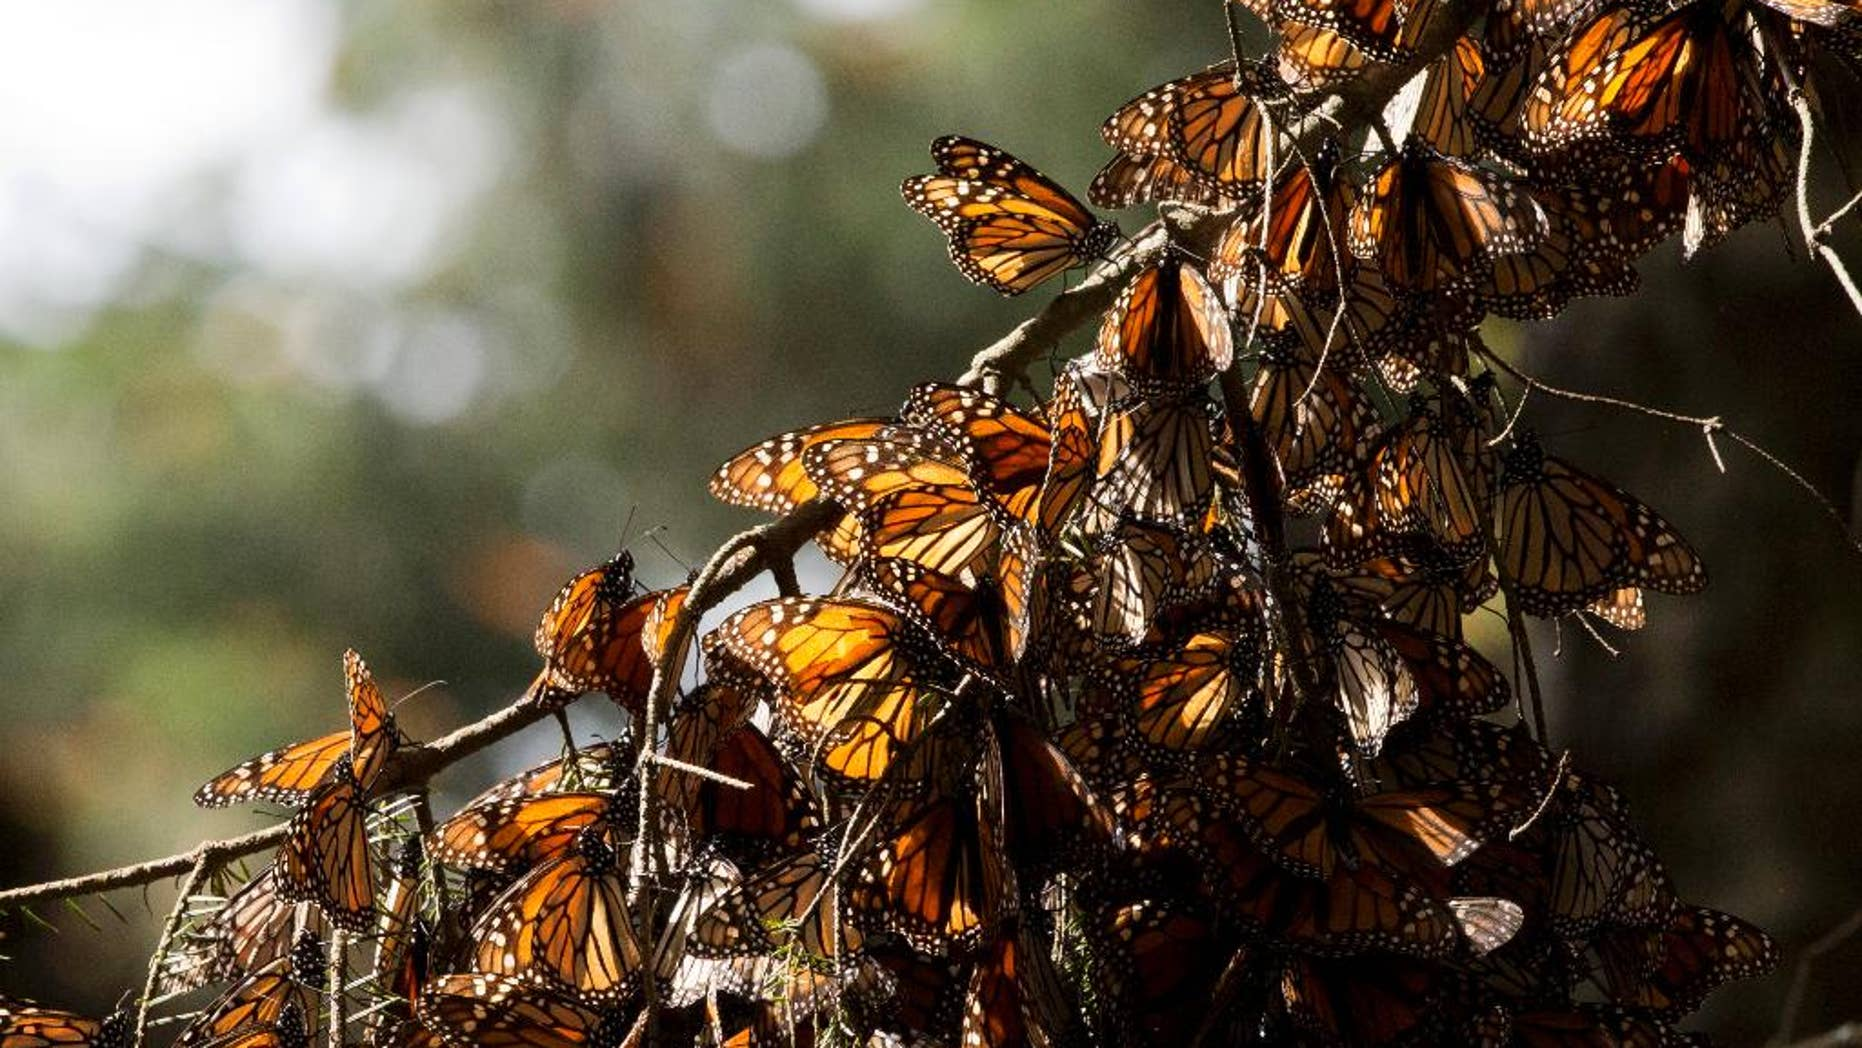 FILE - In this Jan. 4, 2015 file photo, a kaleidoscope of Monarch butterflies hang from a tree branch, in the Piedra Herrada sanctuary, near Valle de Bravo, Mexico. Illegal logging has almost tripled in the monarch butterfly's wintering grounds in central Mexico, reversing several years of steady improvements. Almost all of the loss occurred in San Felipe de los Alzati, in the state of Michoacan, over the past year, while little was lost in 31 other communities, according to a Tuesday, Aug. 25, 2015 announcement by the World Wildlife fund and the Institute of Biology of Mexico's National Autonomous University. (AP Photo/Rebecca Blackwell, File)